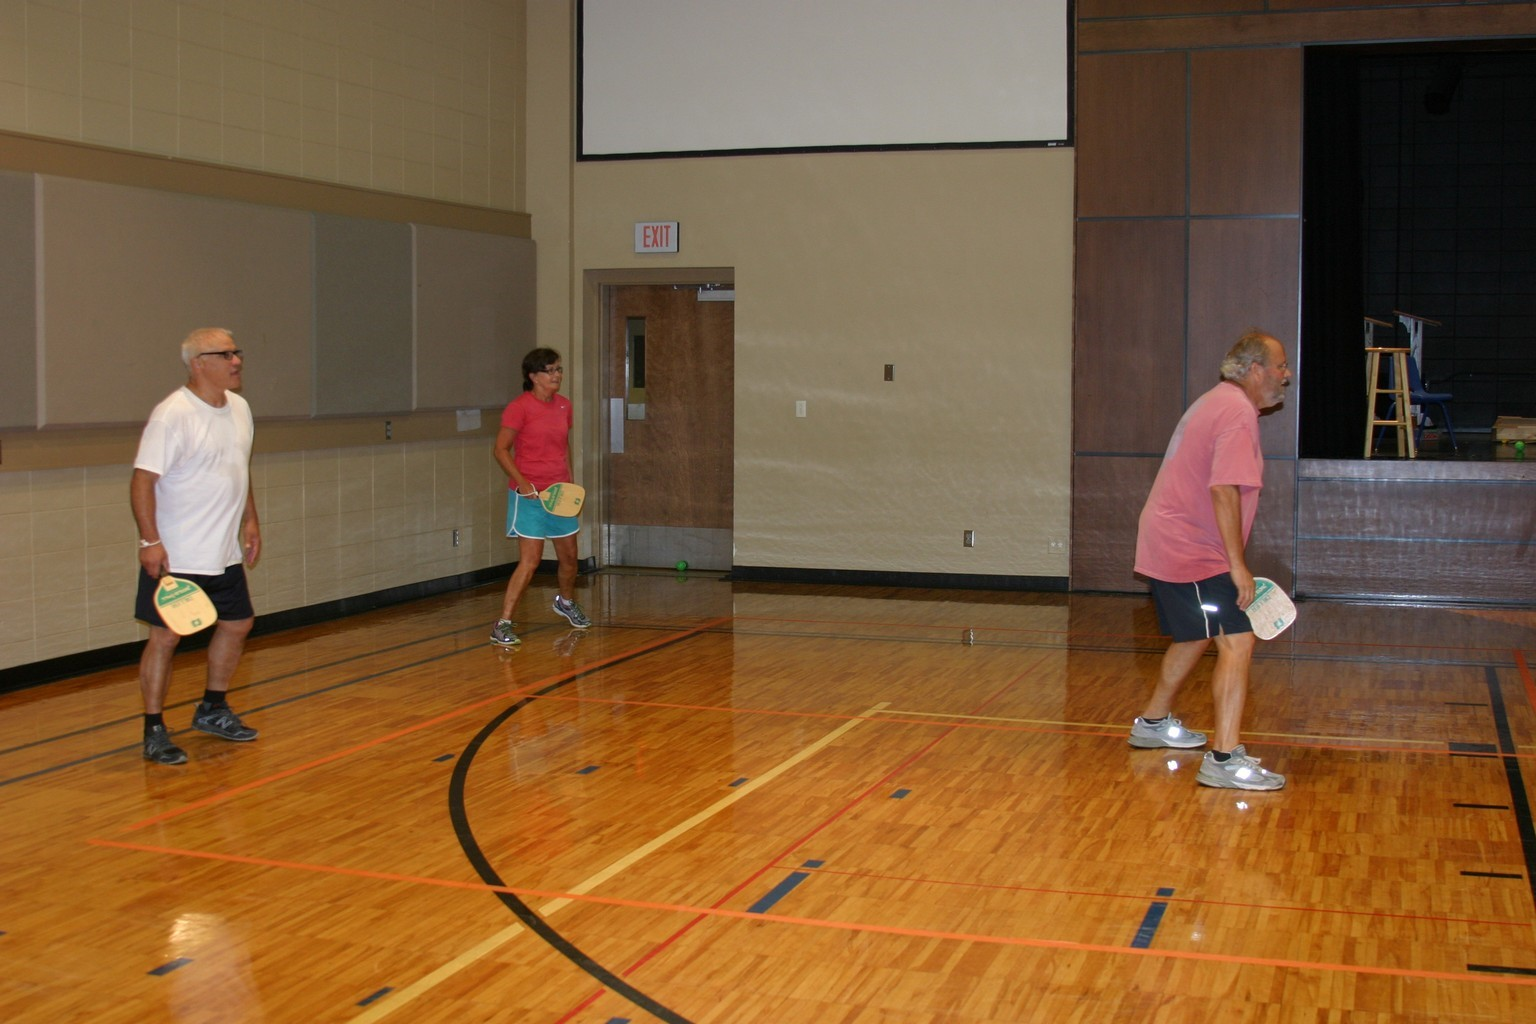 trussville pickleball, birmingham pickleball, pickleball, family pickleball, first baptist church trussville